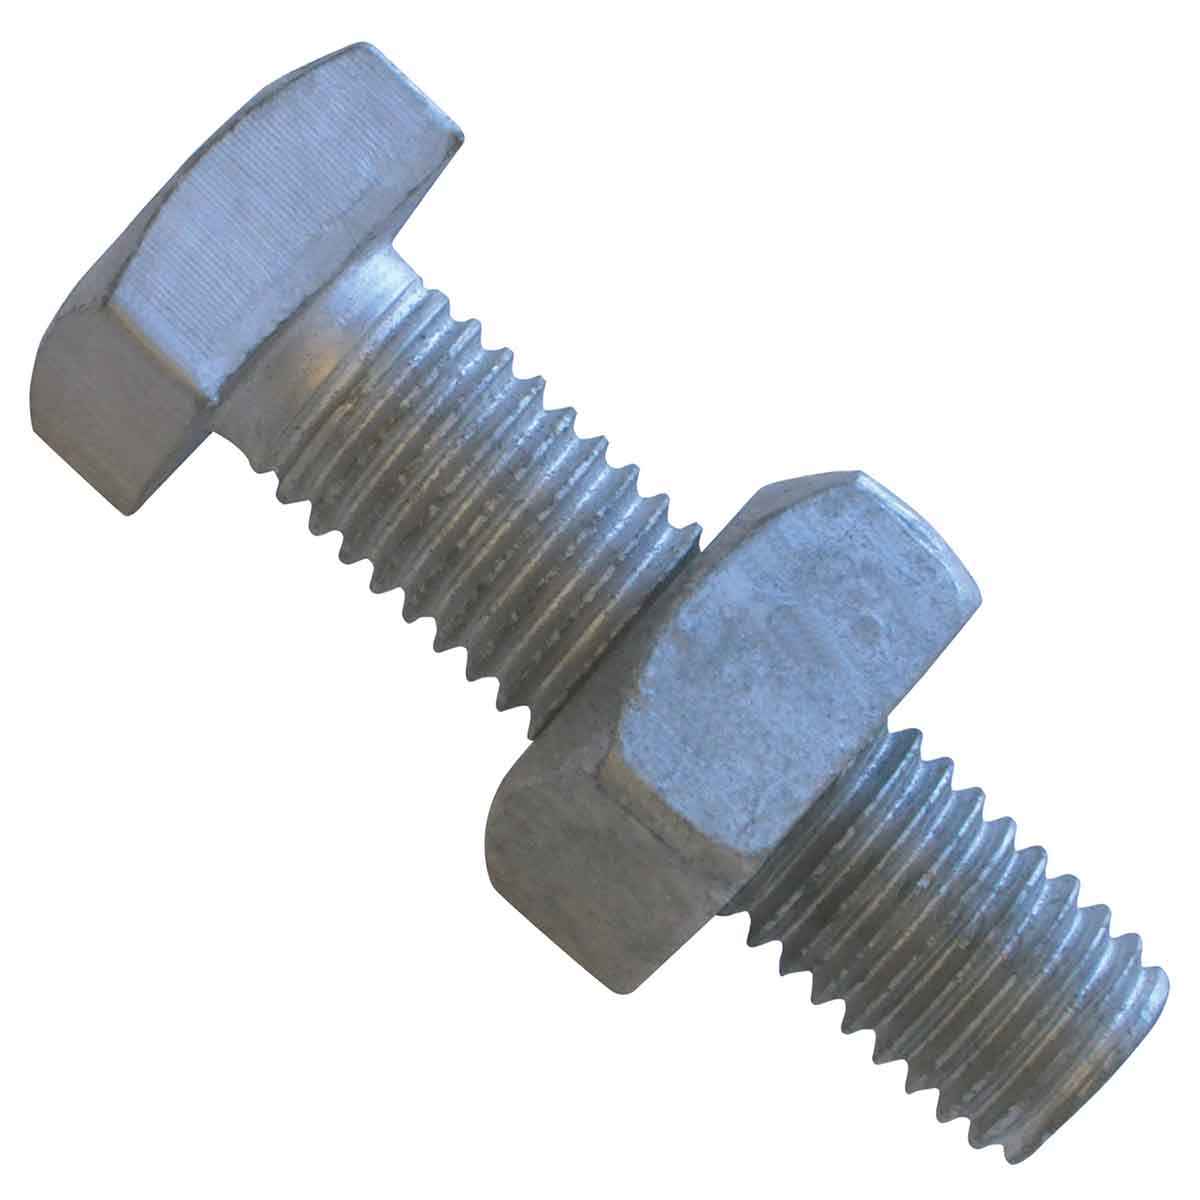 how to break a nut and bolt